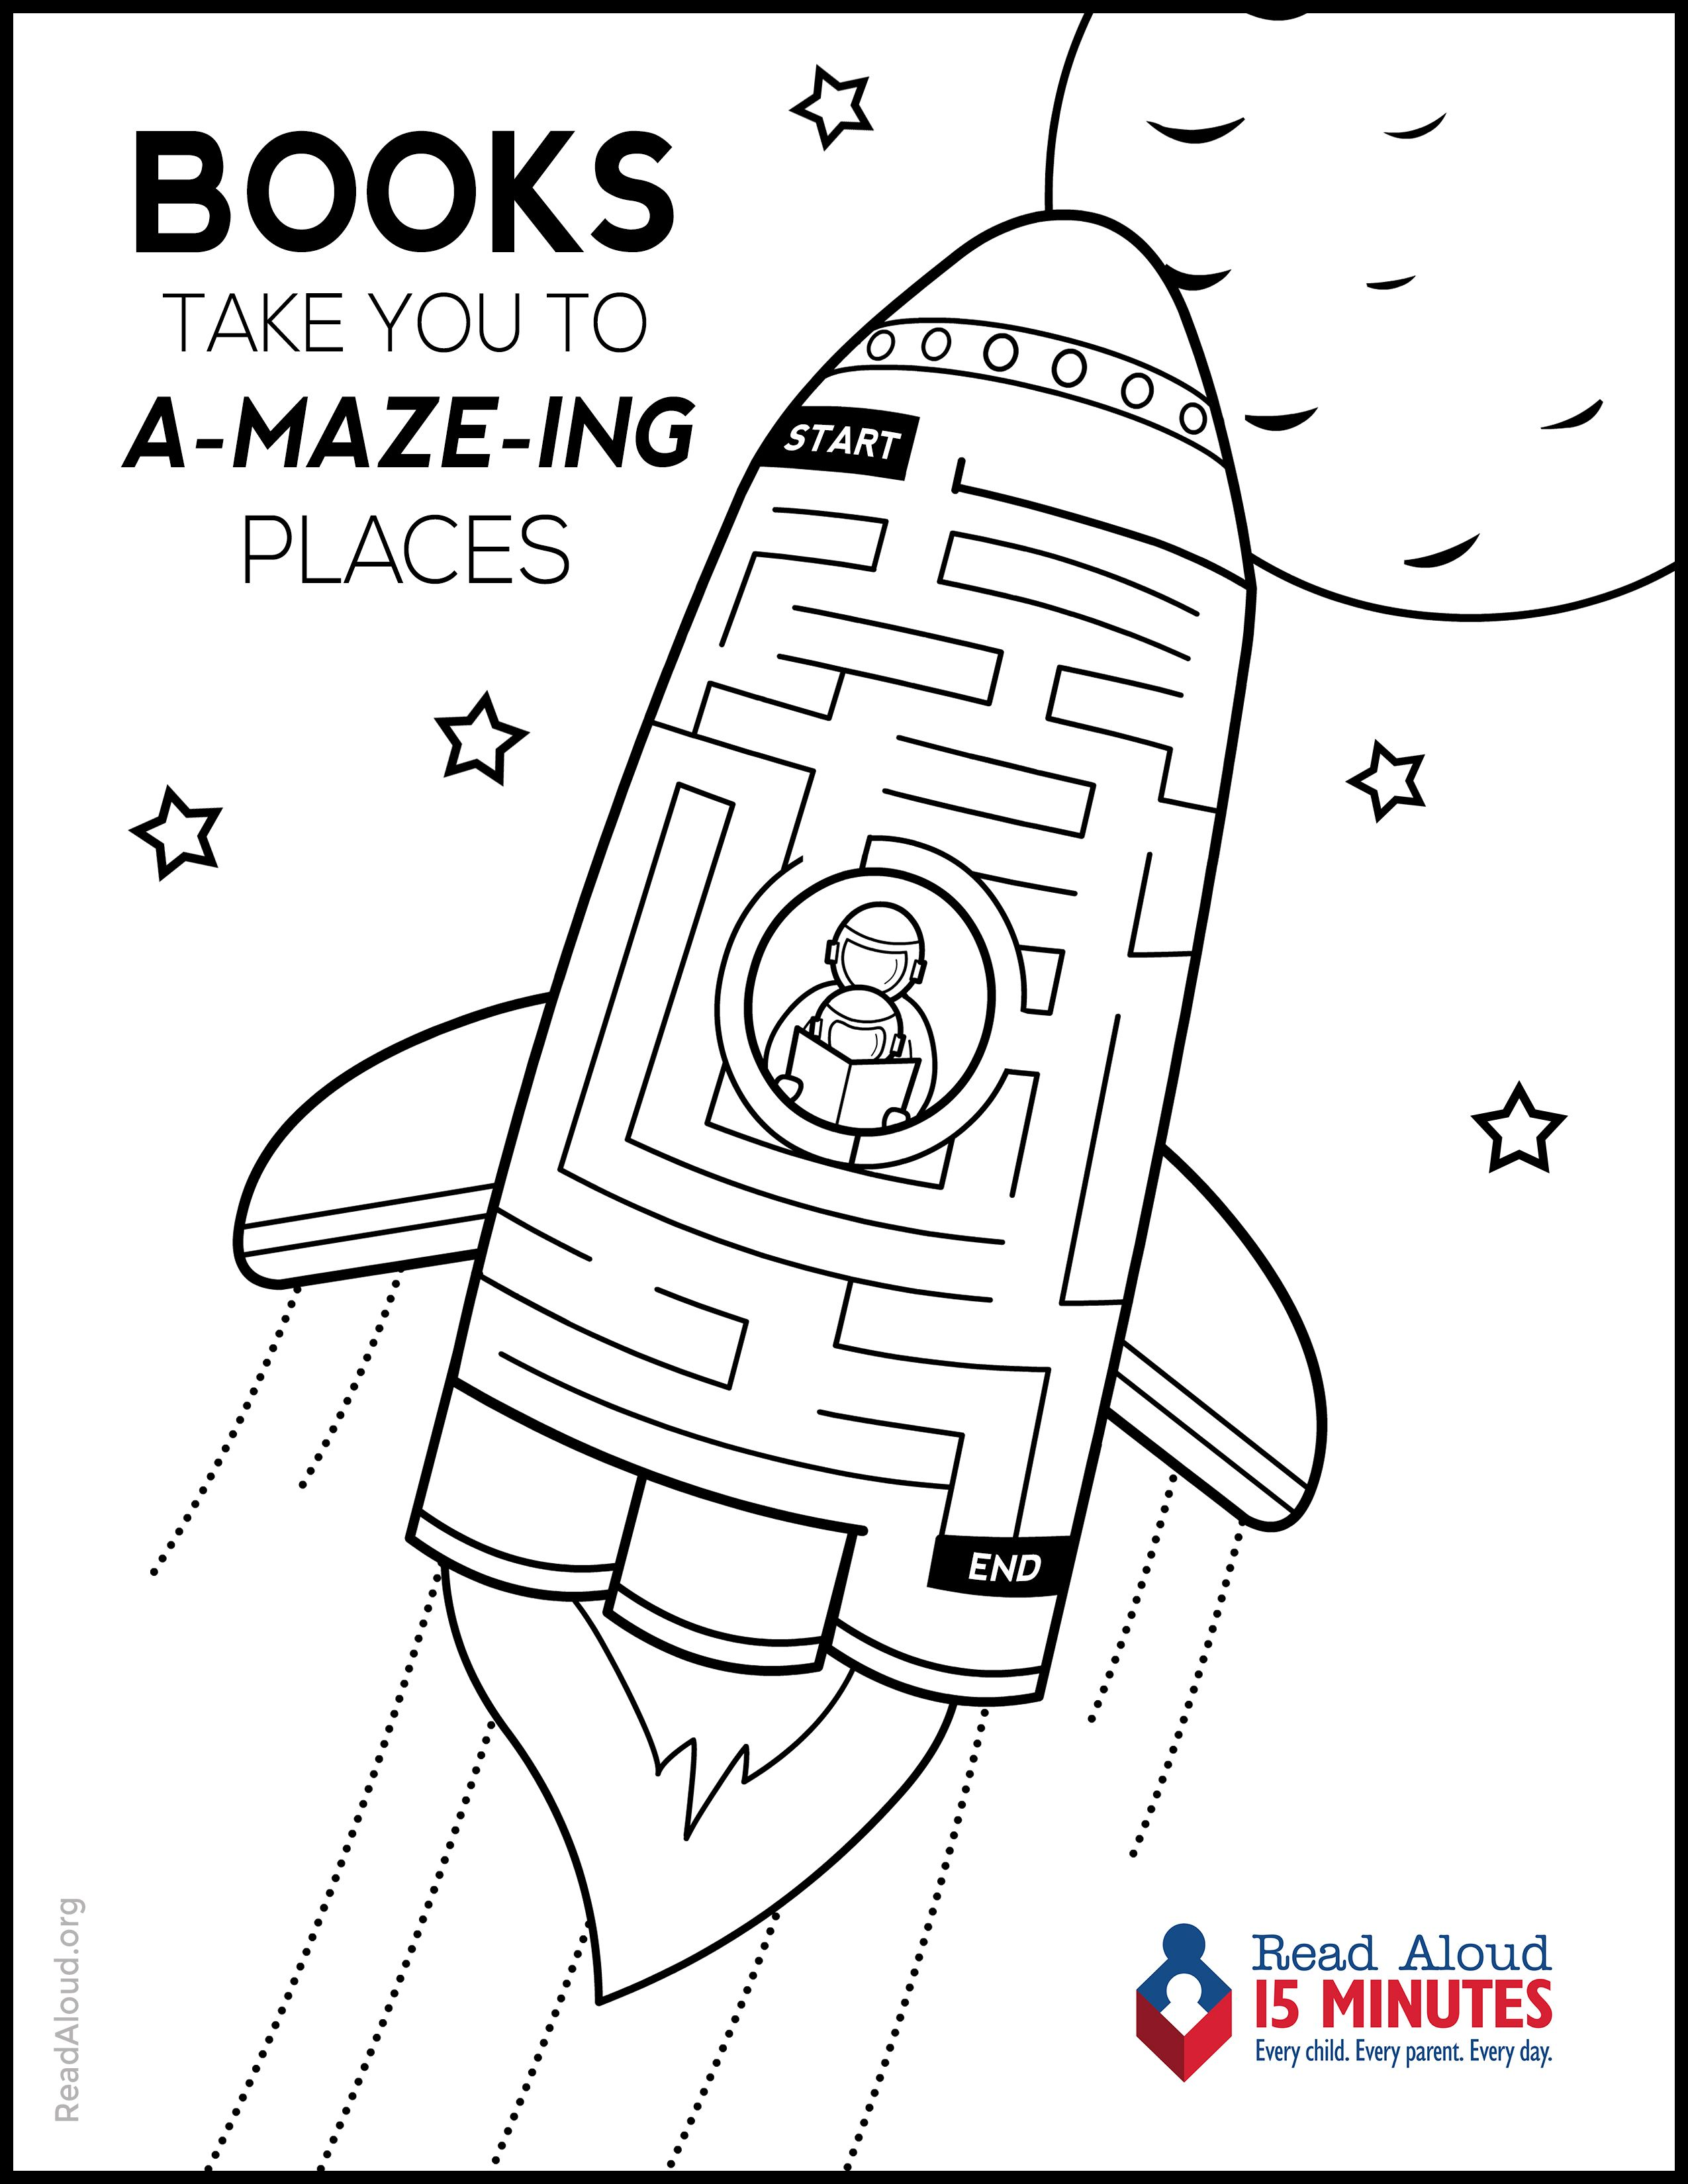 Check Out Our Fun Activity Sheets